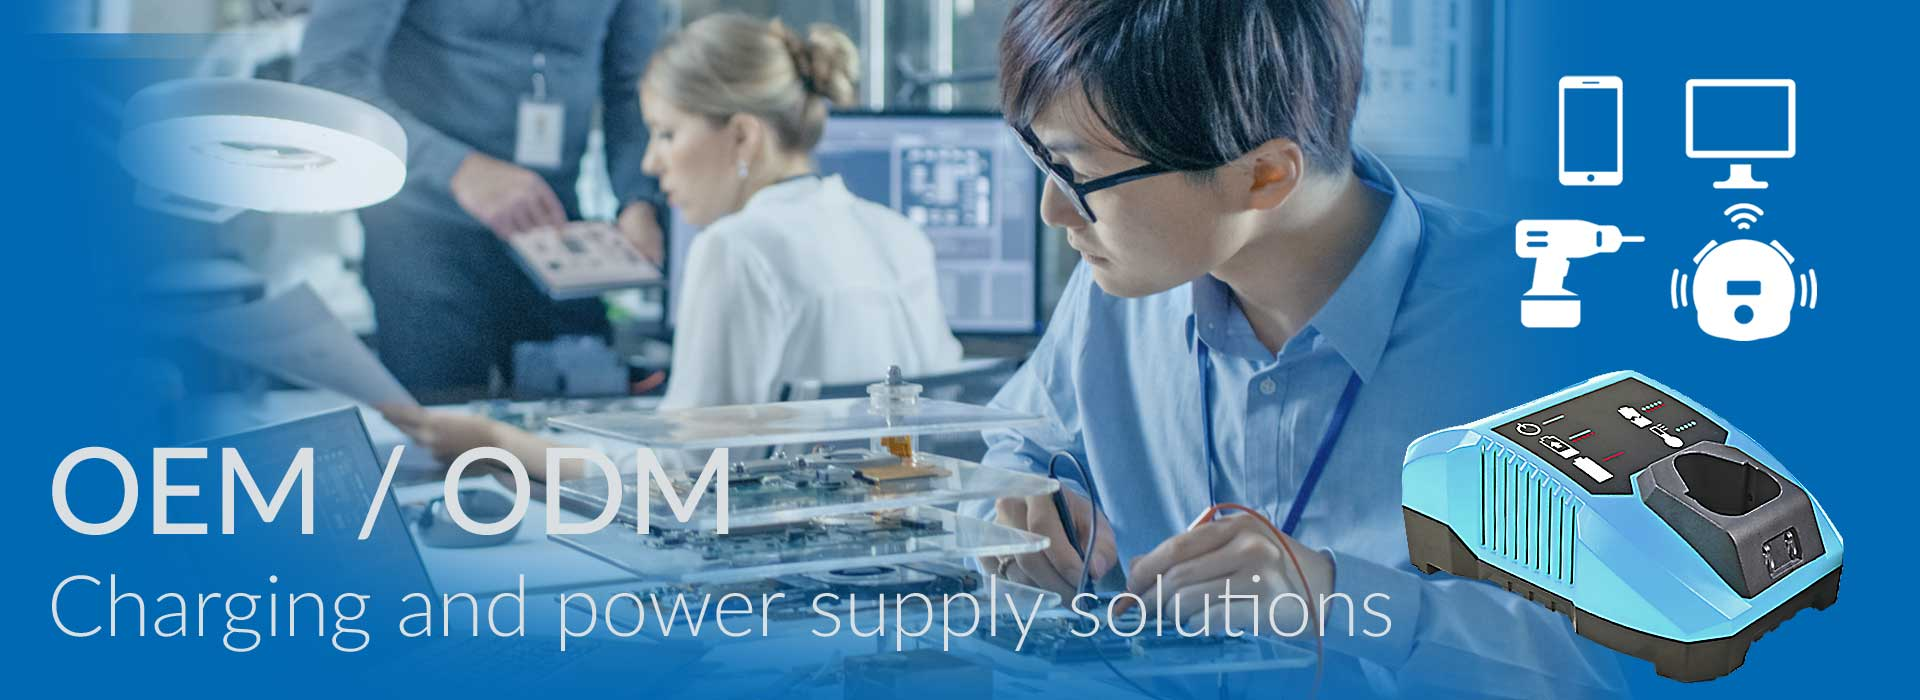 oem-odm-Charging-power-supply-solutions